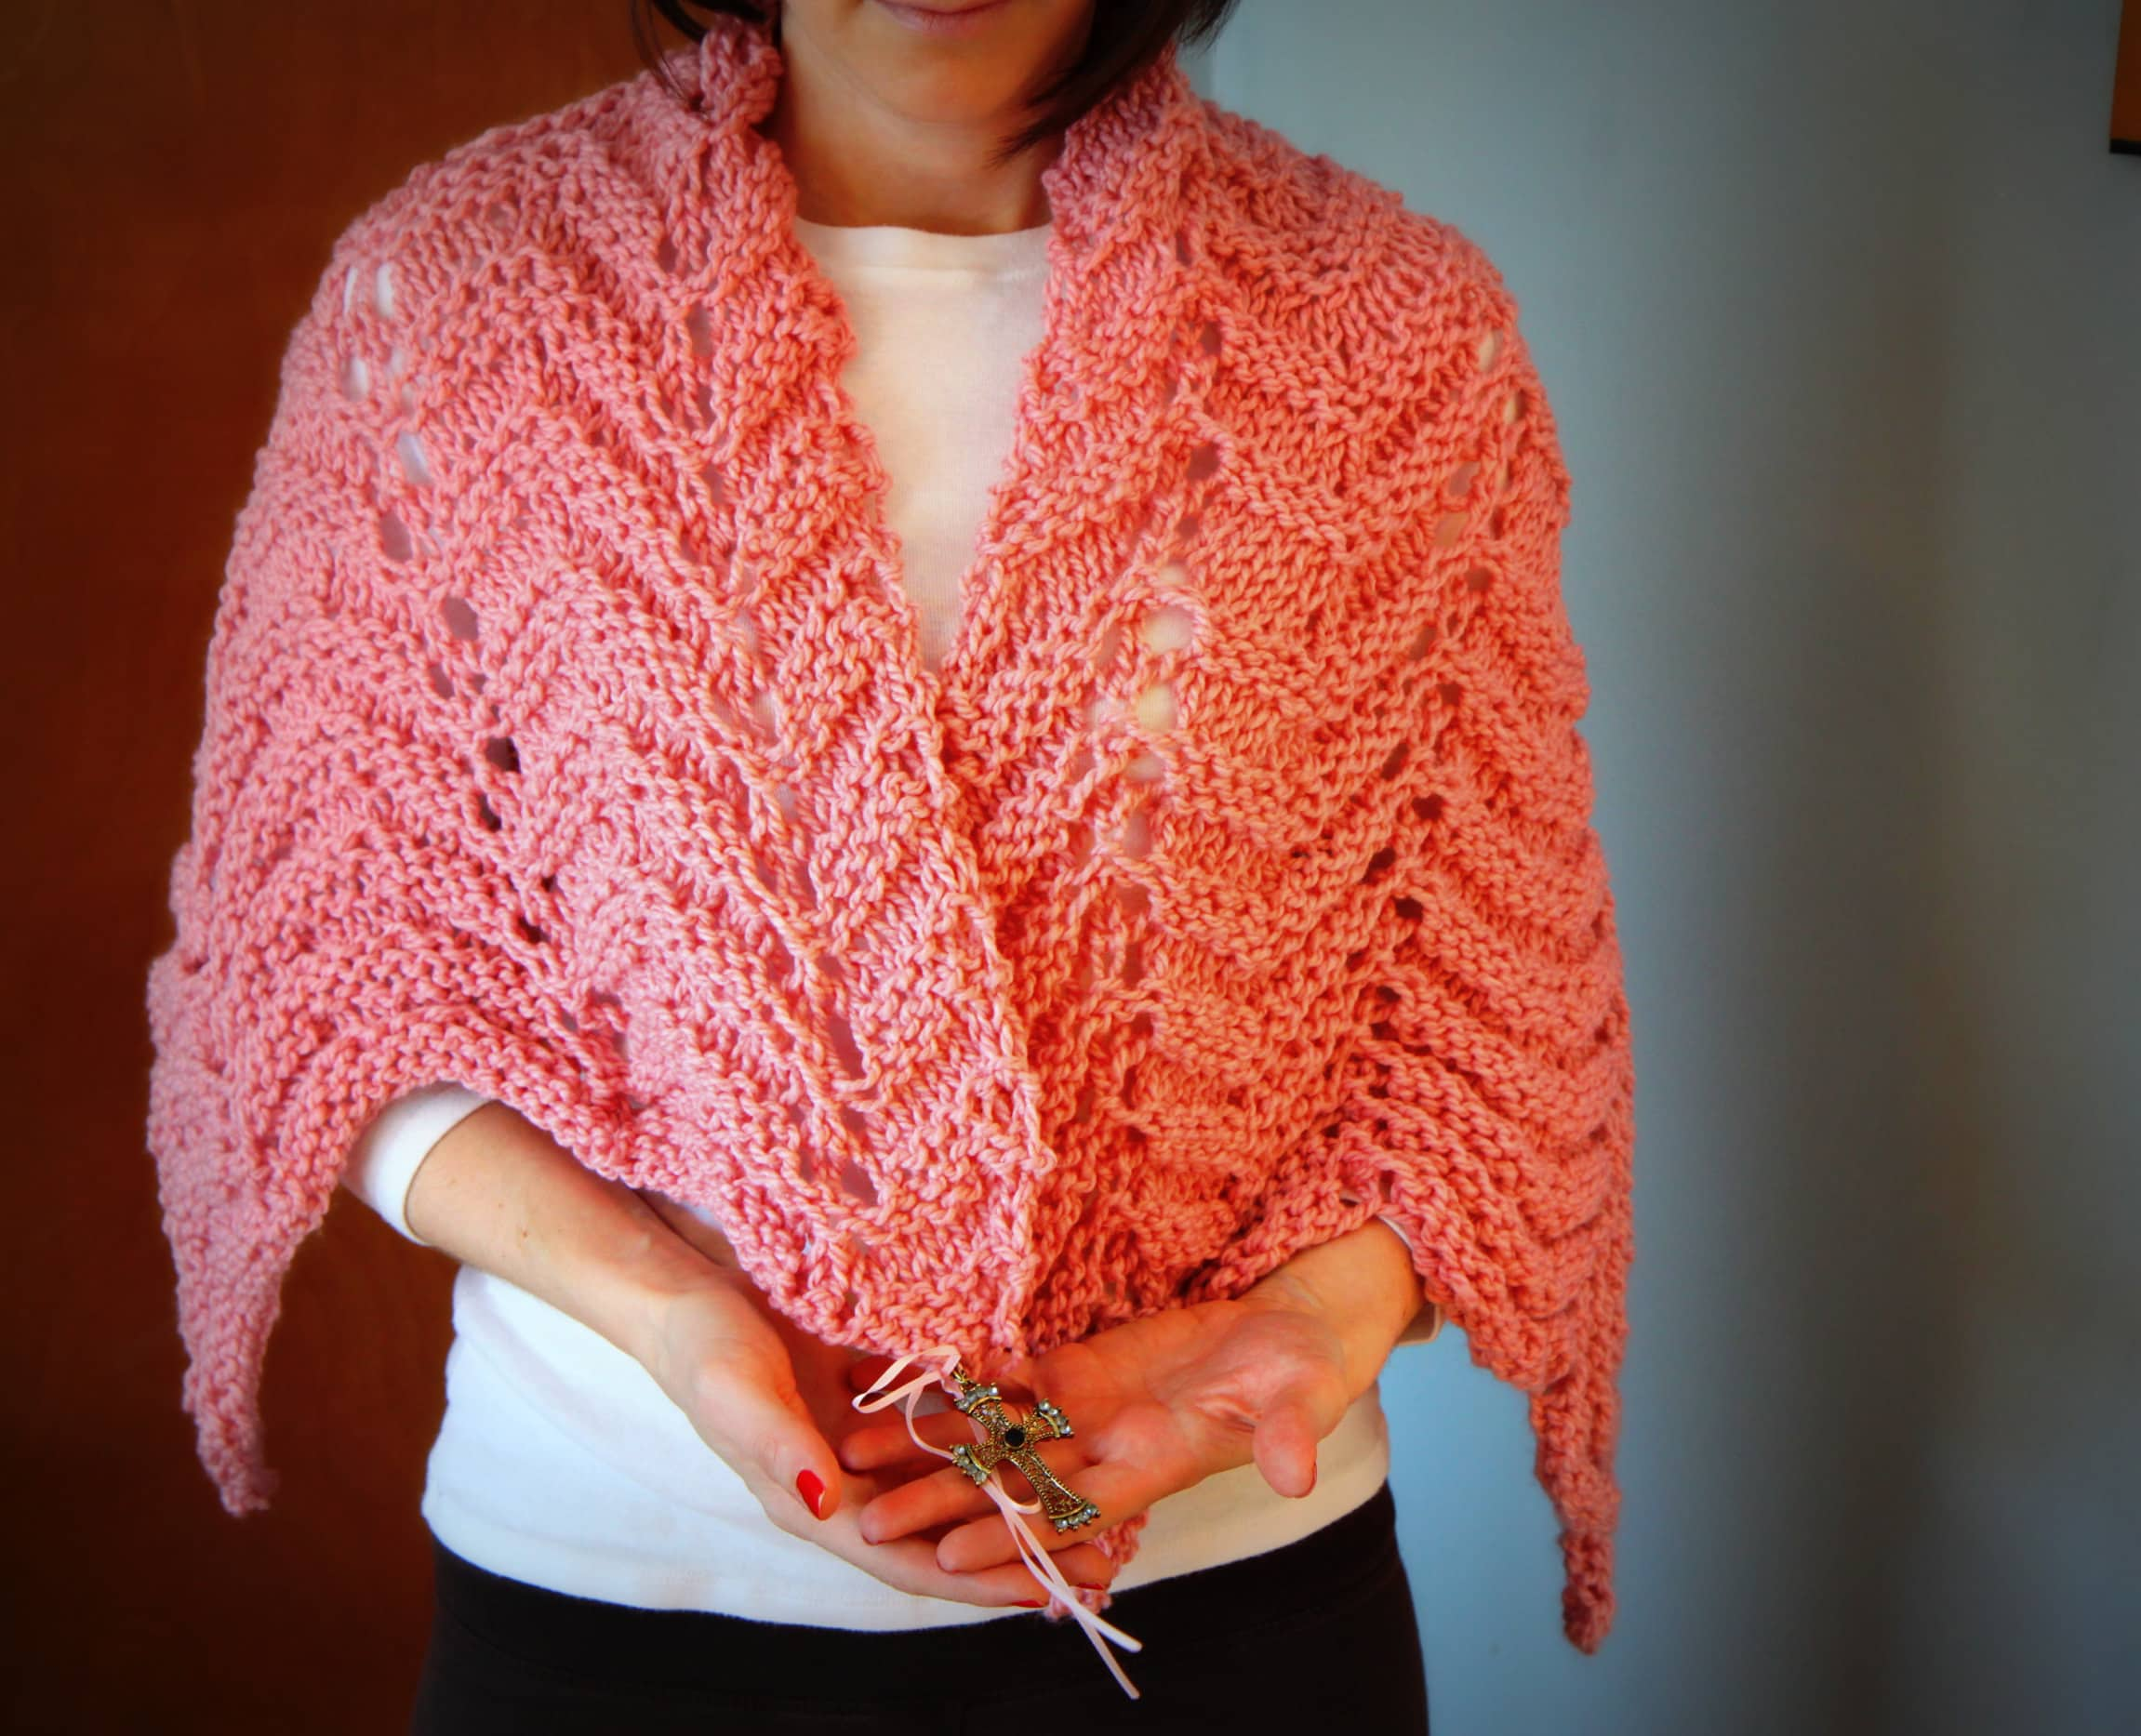 How to Make a Prayer Shawl  MomAdvice